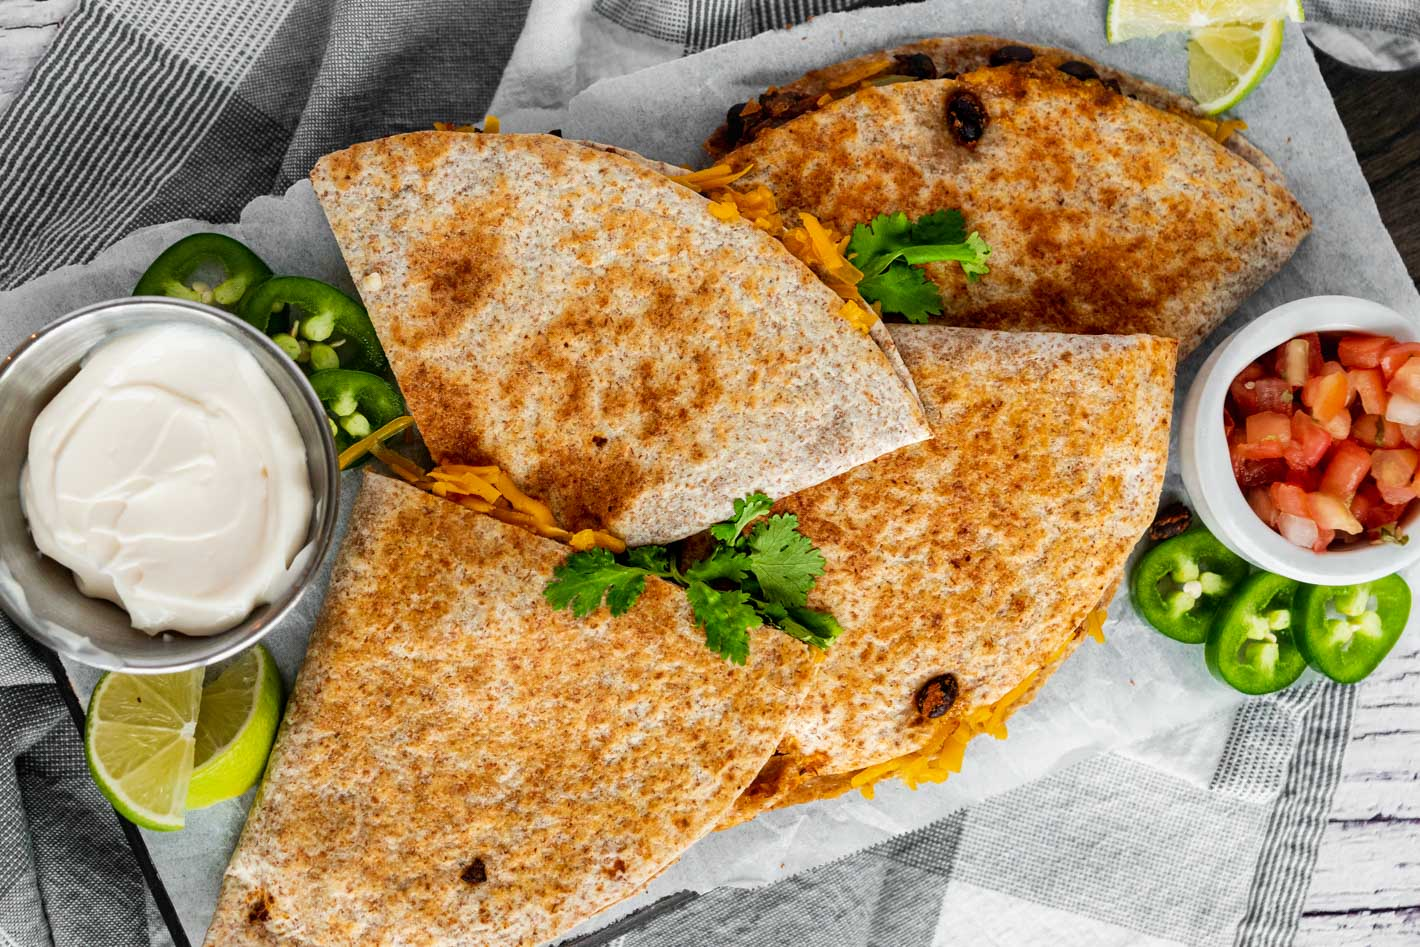 Top-down image of a golden brown black bean quesadilla cute into quarters on a white board on a grey kitchen napkin. To the side there is a small bowl of diced tomato, sliced jalapeno and another bowl of vegan sour cream.